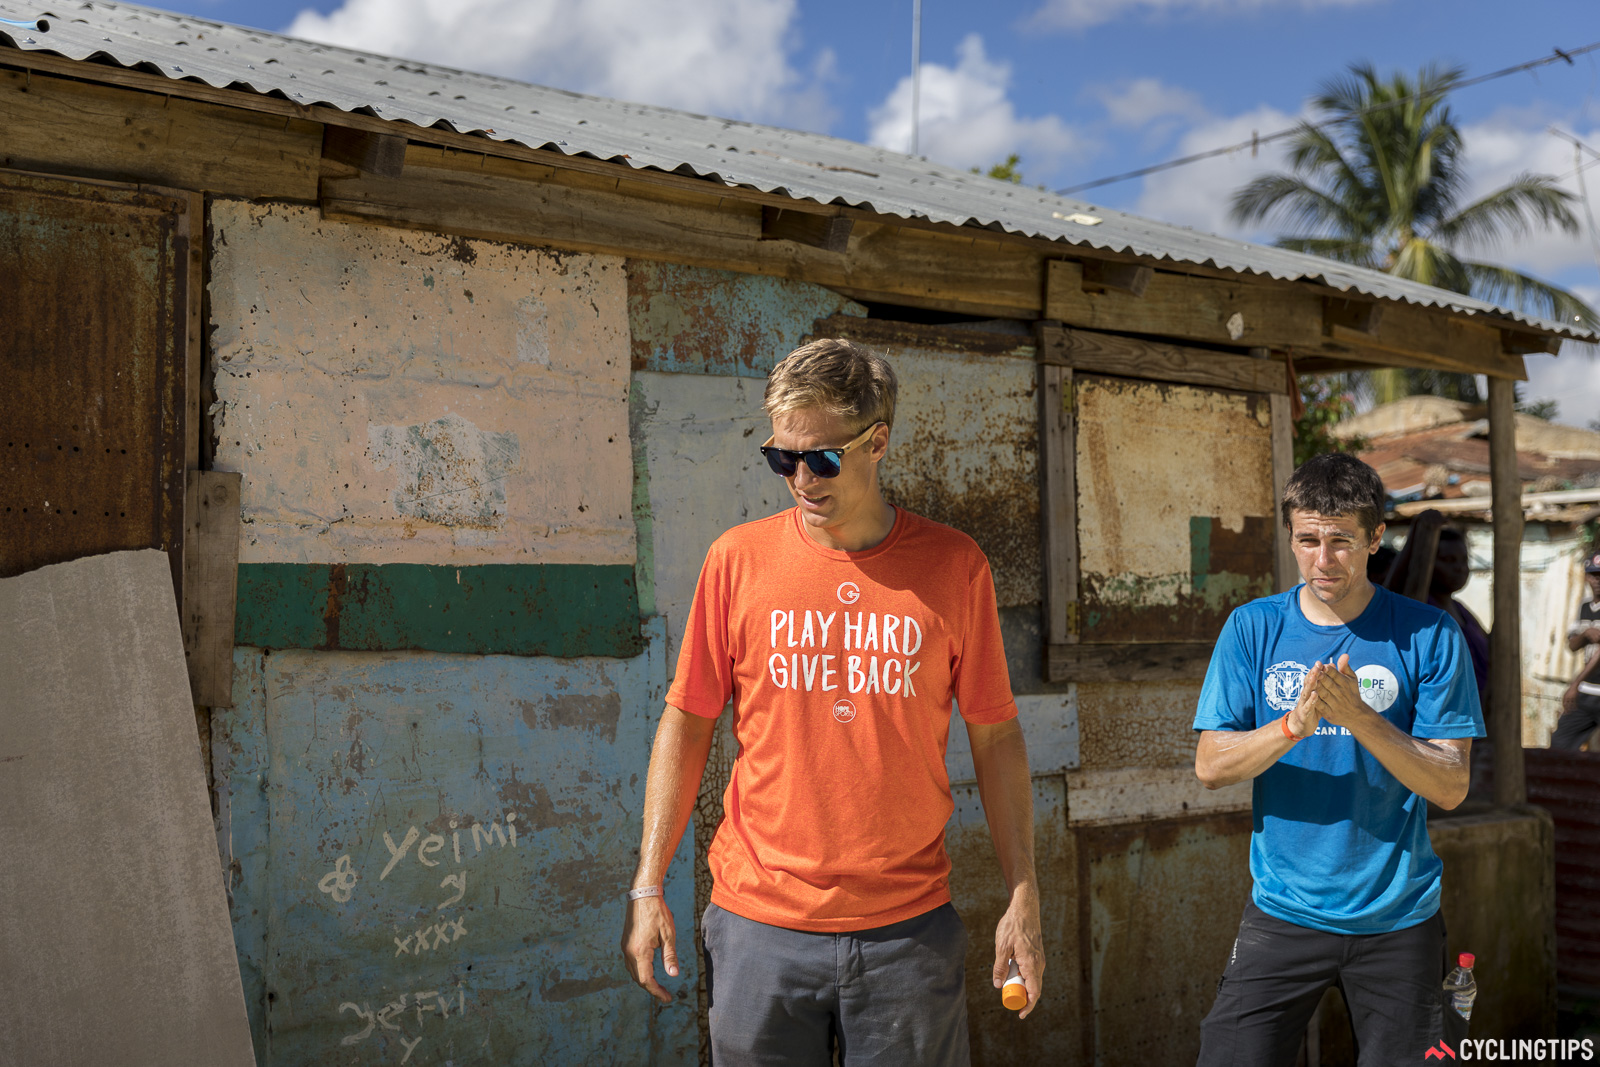 Guy East and rider Stephen Clancy. East is the founder of Hope Sports, a voluntary organisation which collaborates with volunteers from the world of sports to build homes for the poor.